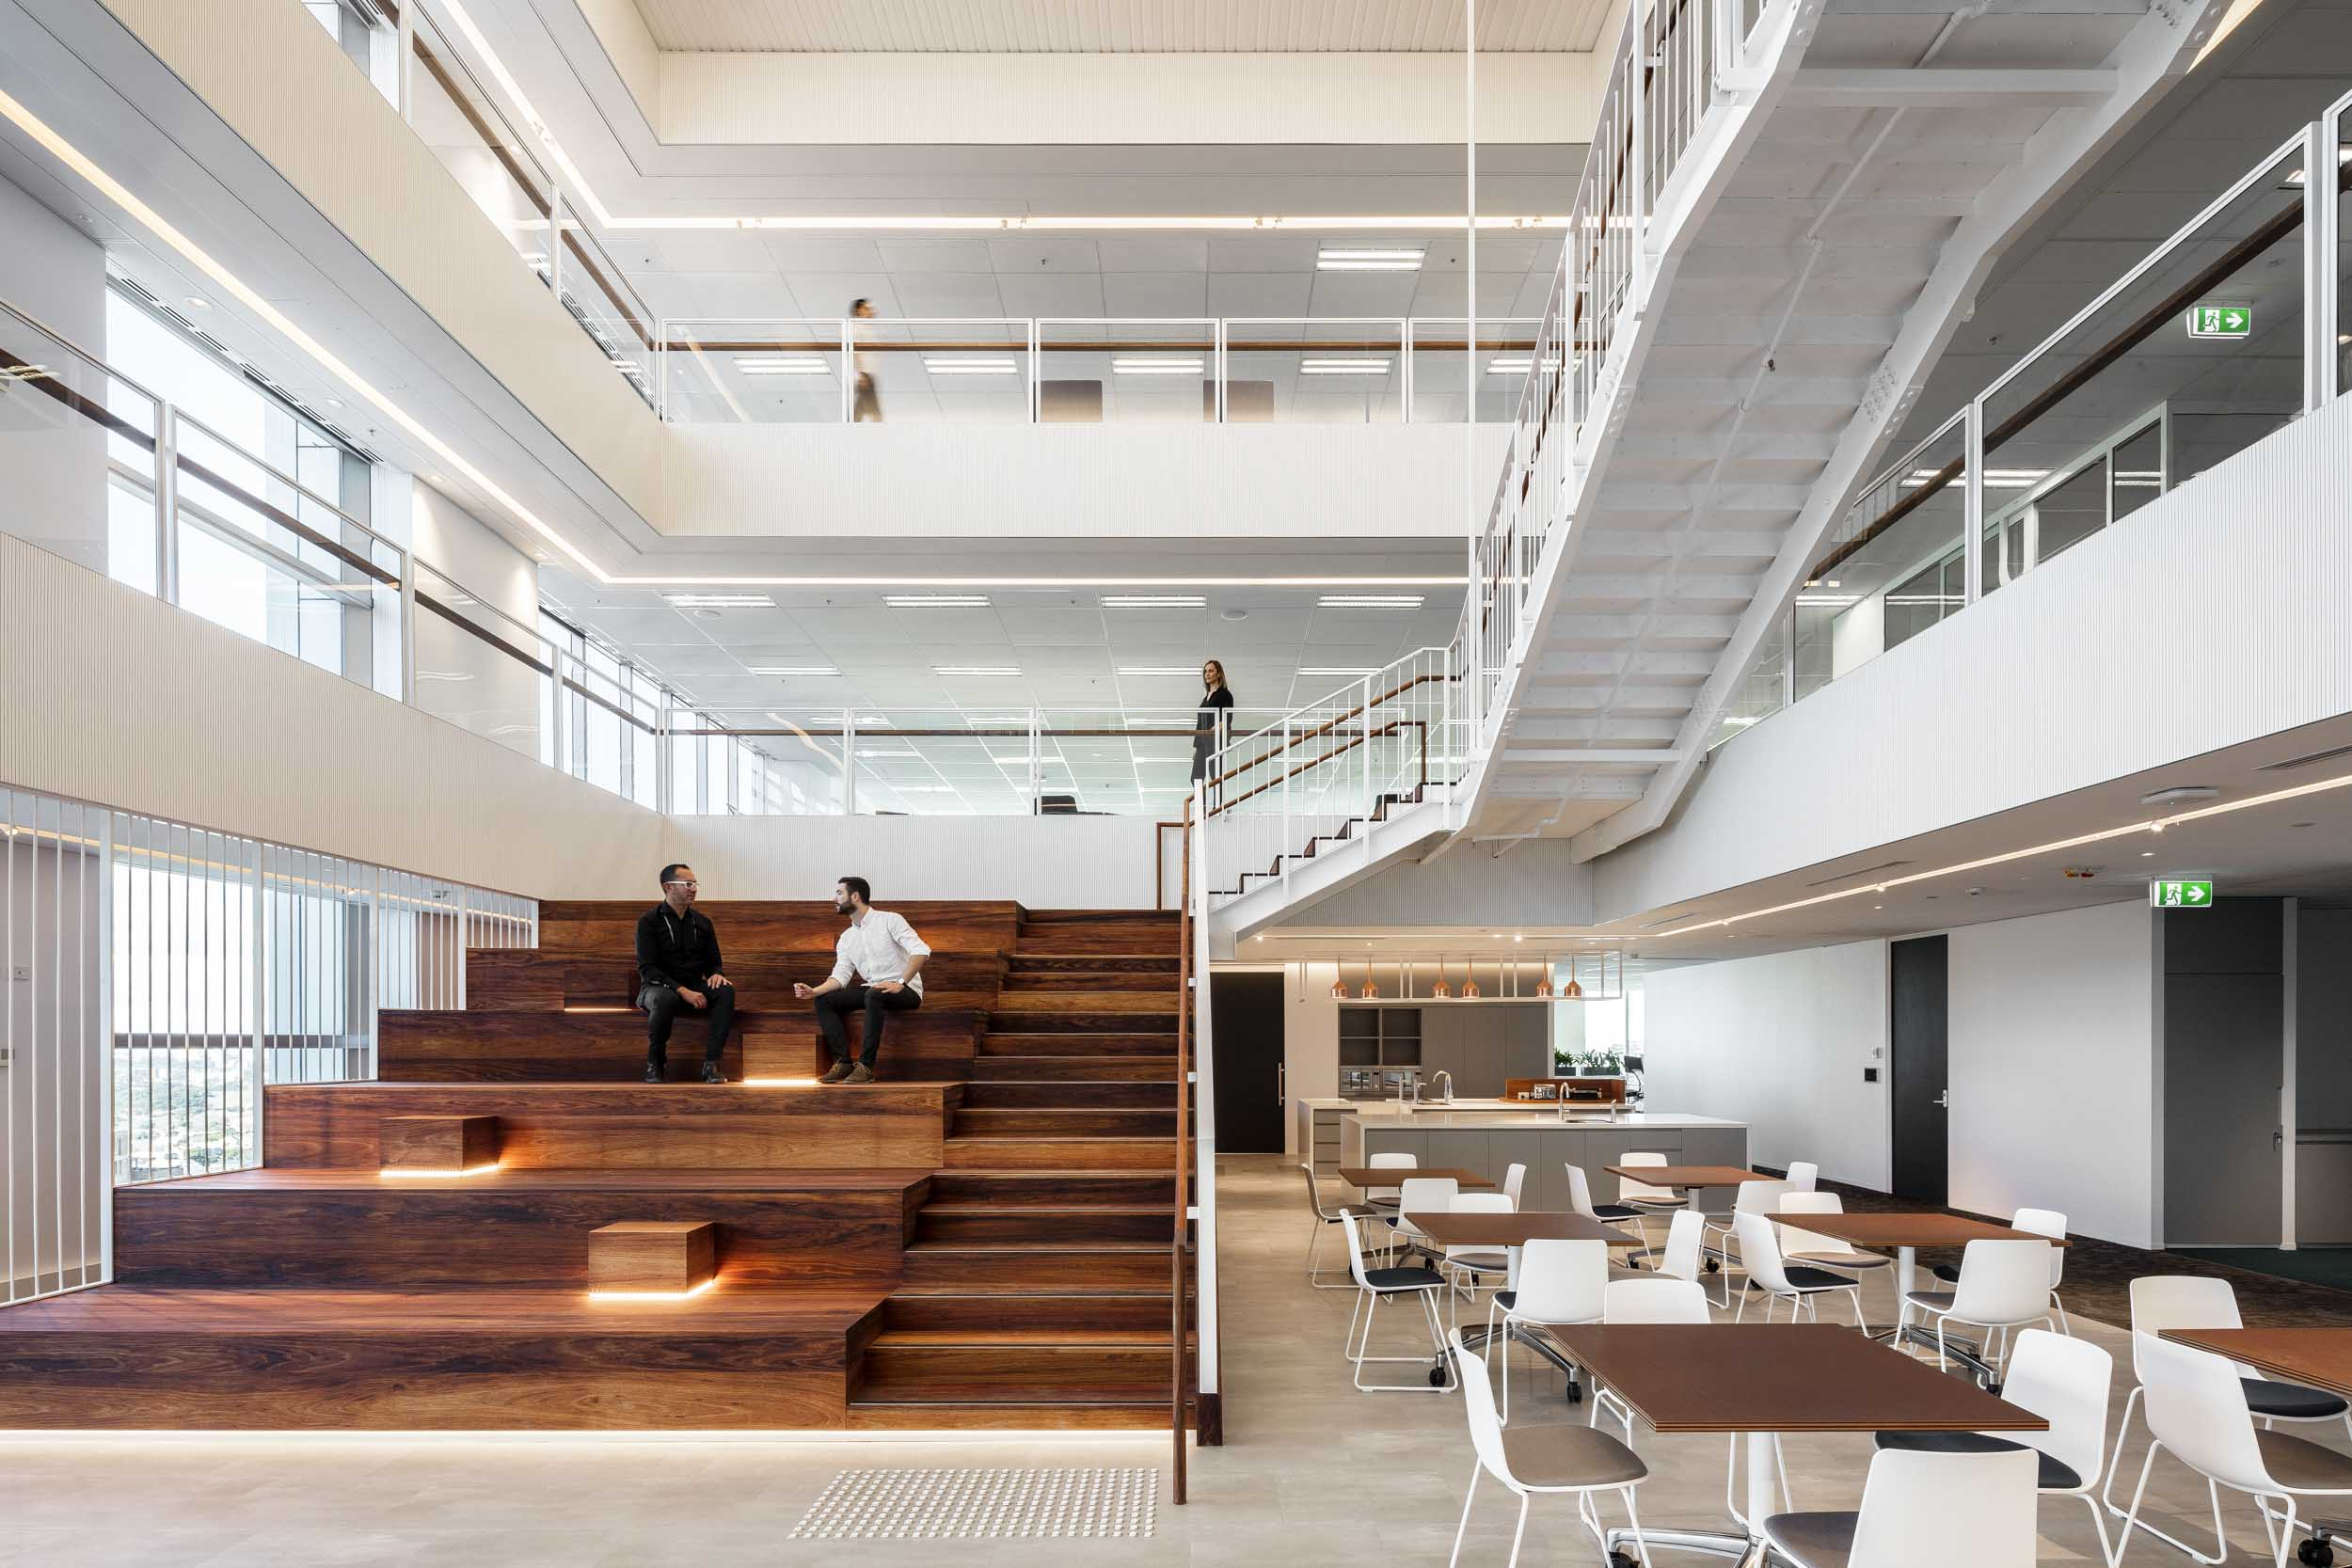 680 George St by Cox Architecture